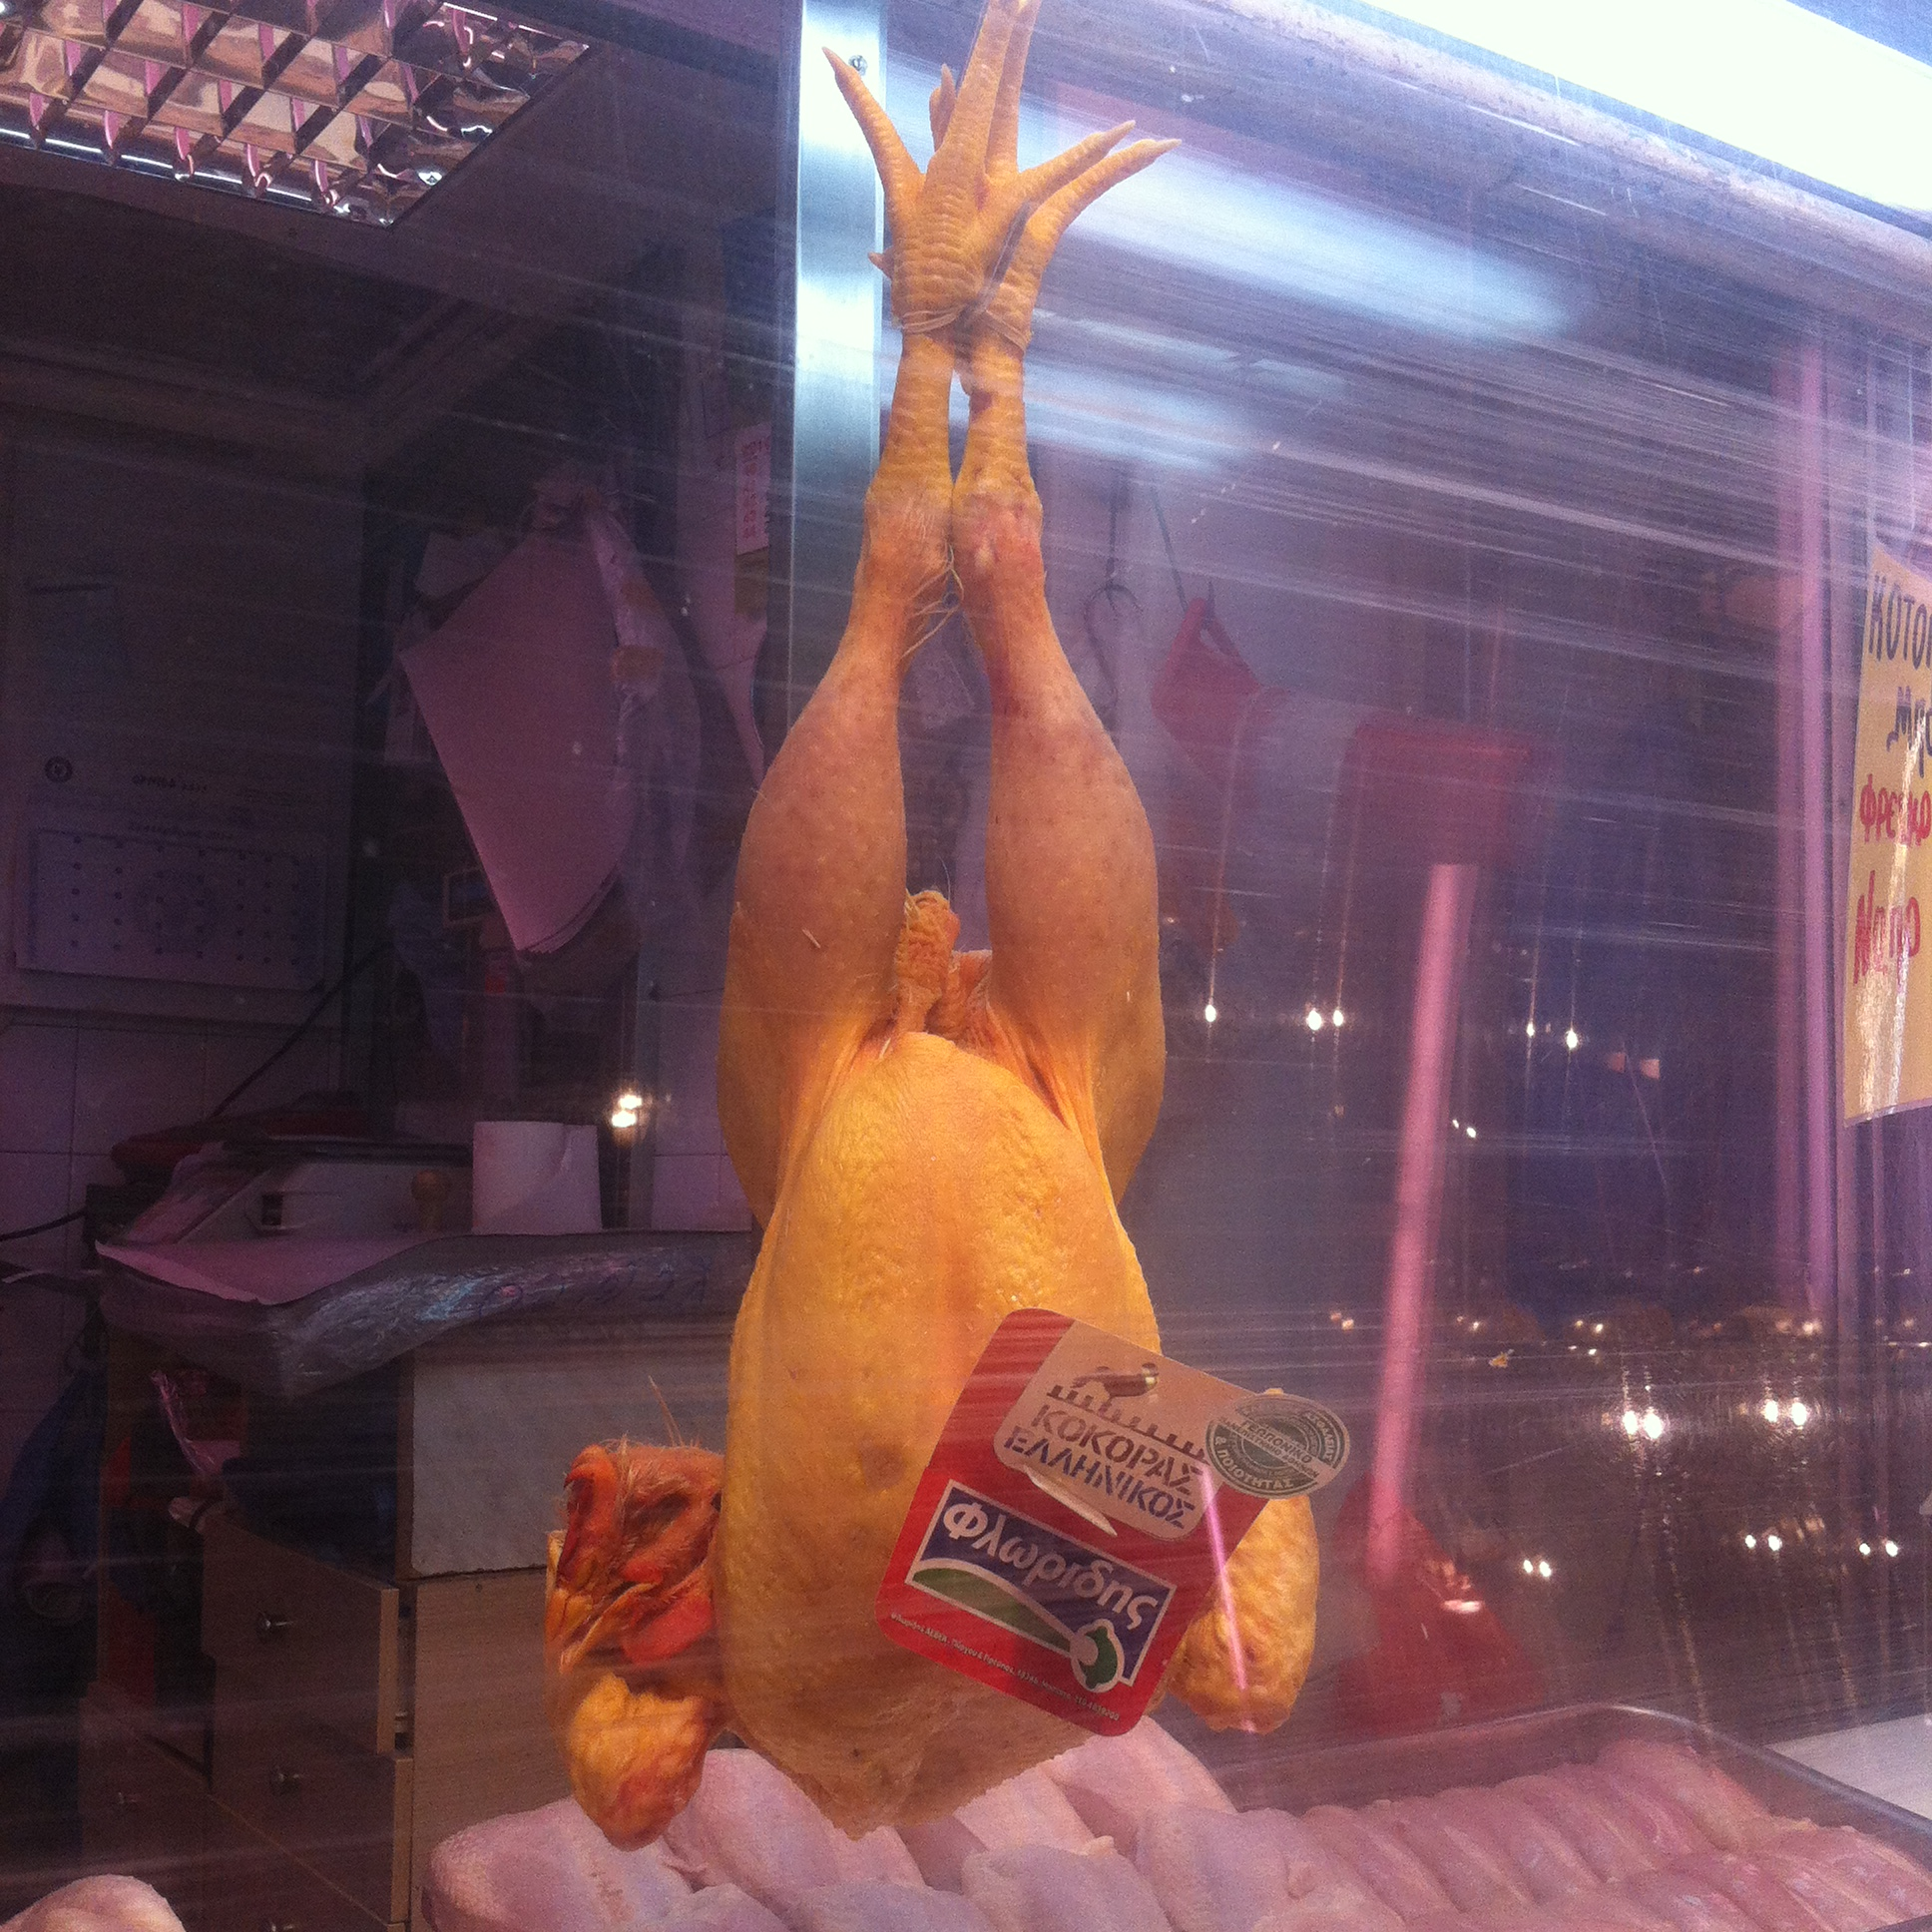 At the meat market, Everyone was waiting to meet us. We received a headstand